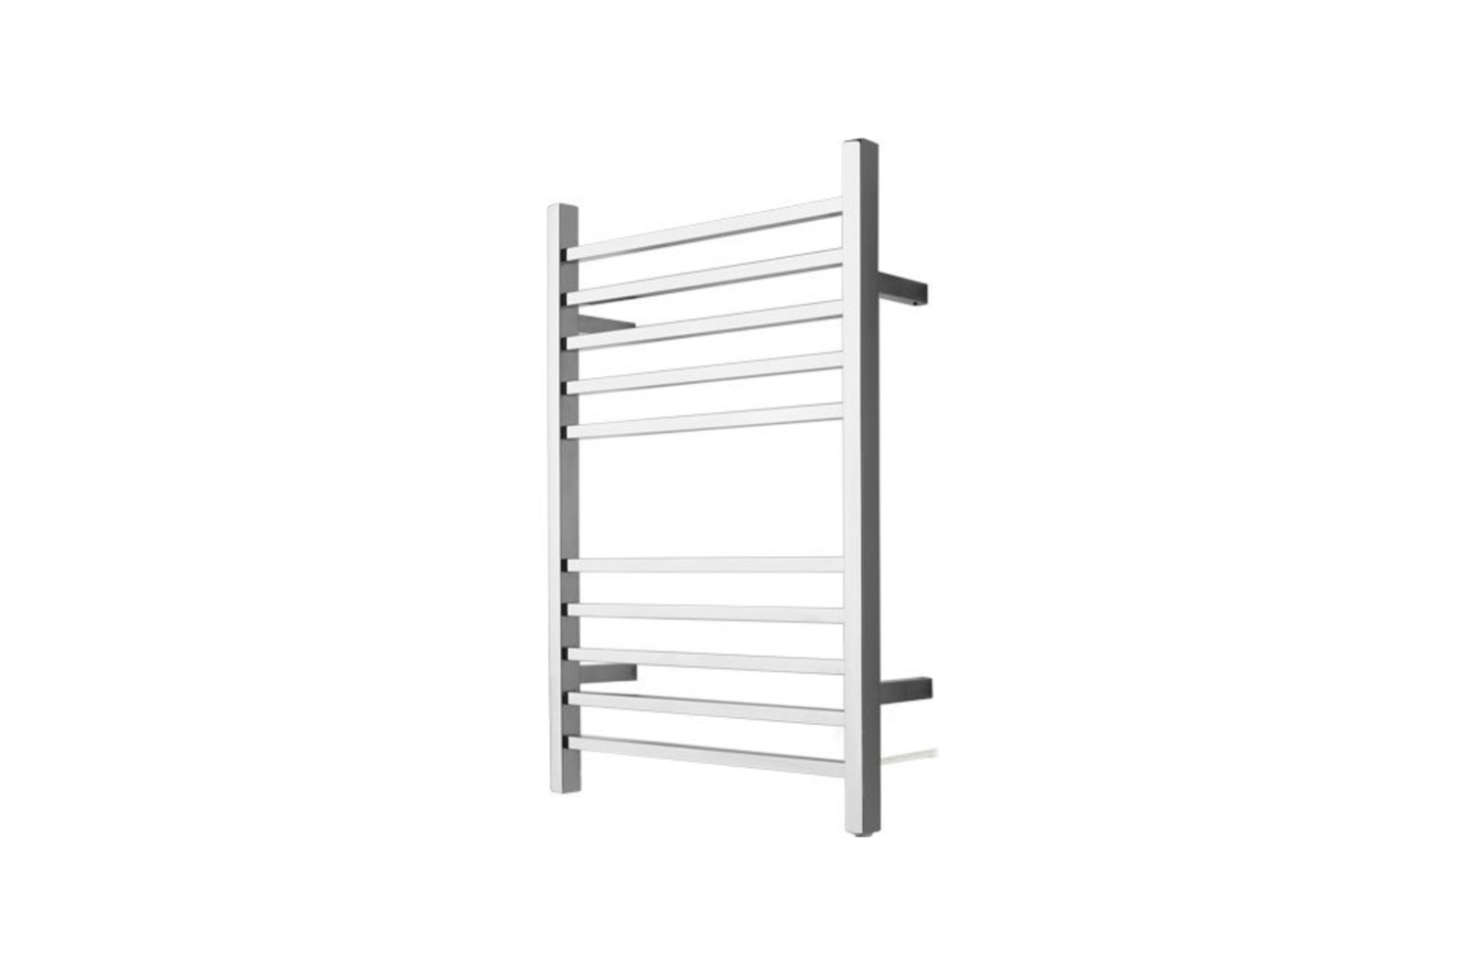 The Amba Radiant Square Plug-in Towel Warmer comes in Brushed Steel and Polished Steel for $217.95 at Only Towel Warmers.